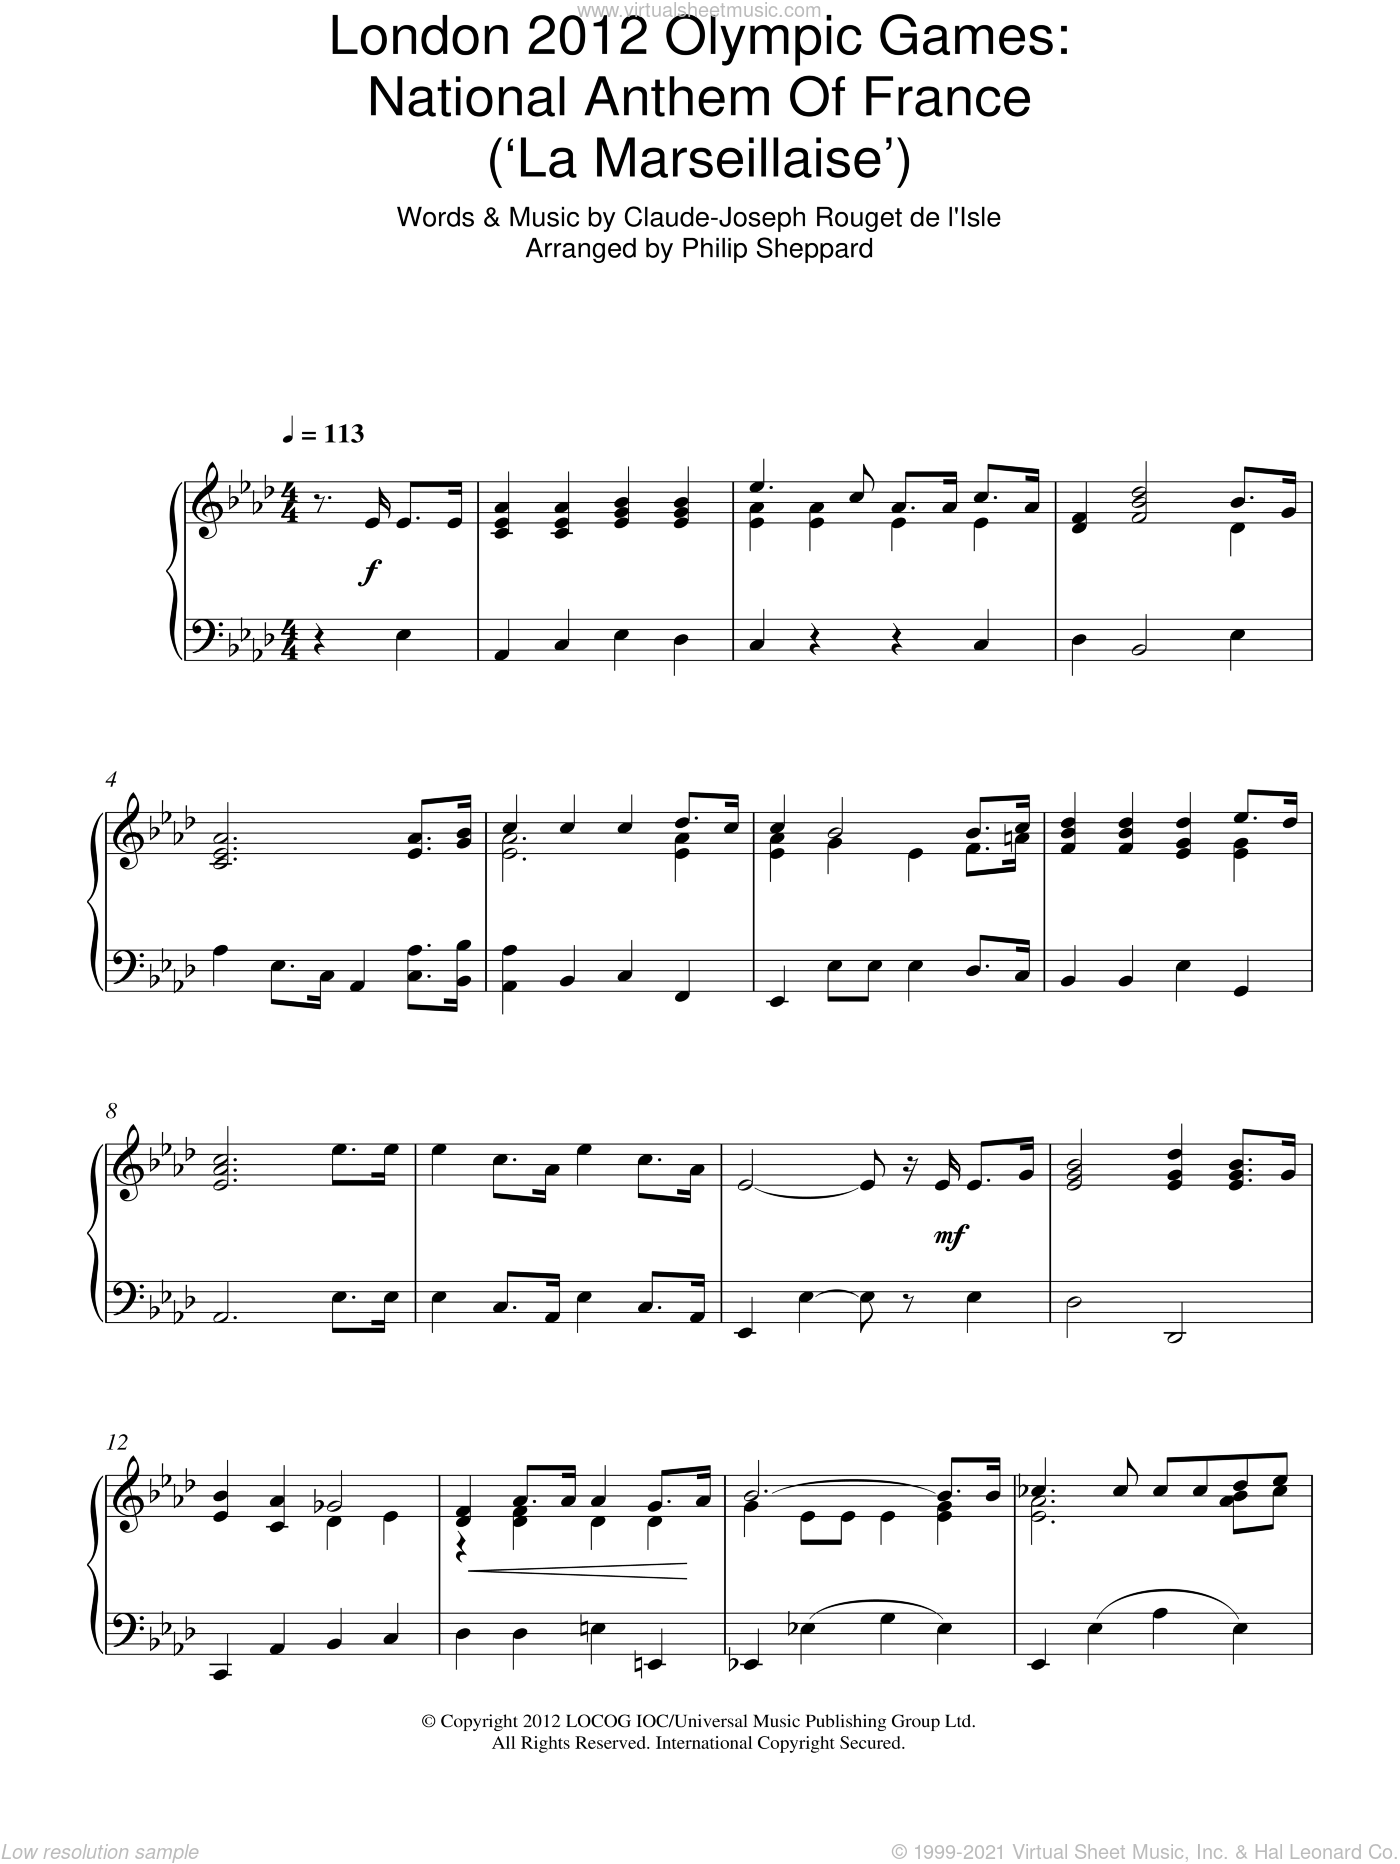 London 2012 Olympic Games: National Anthem Of France ('La Marseillaise') sheet music for piano solo by Claude-Joseph Rouget de L'Isle